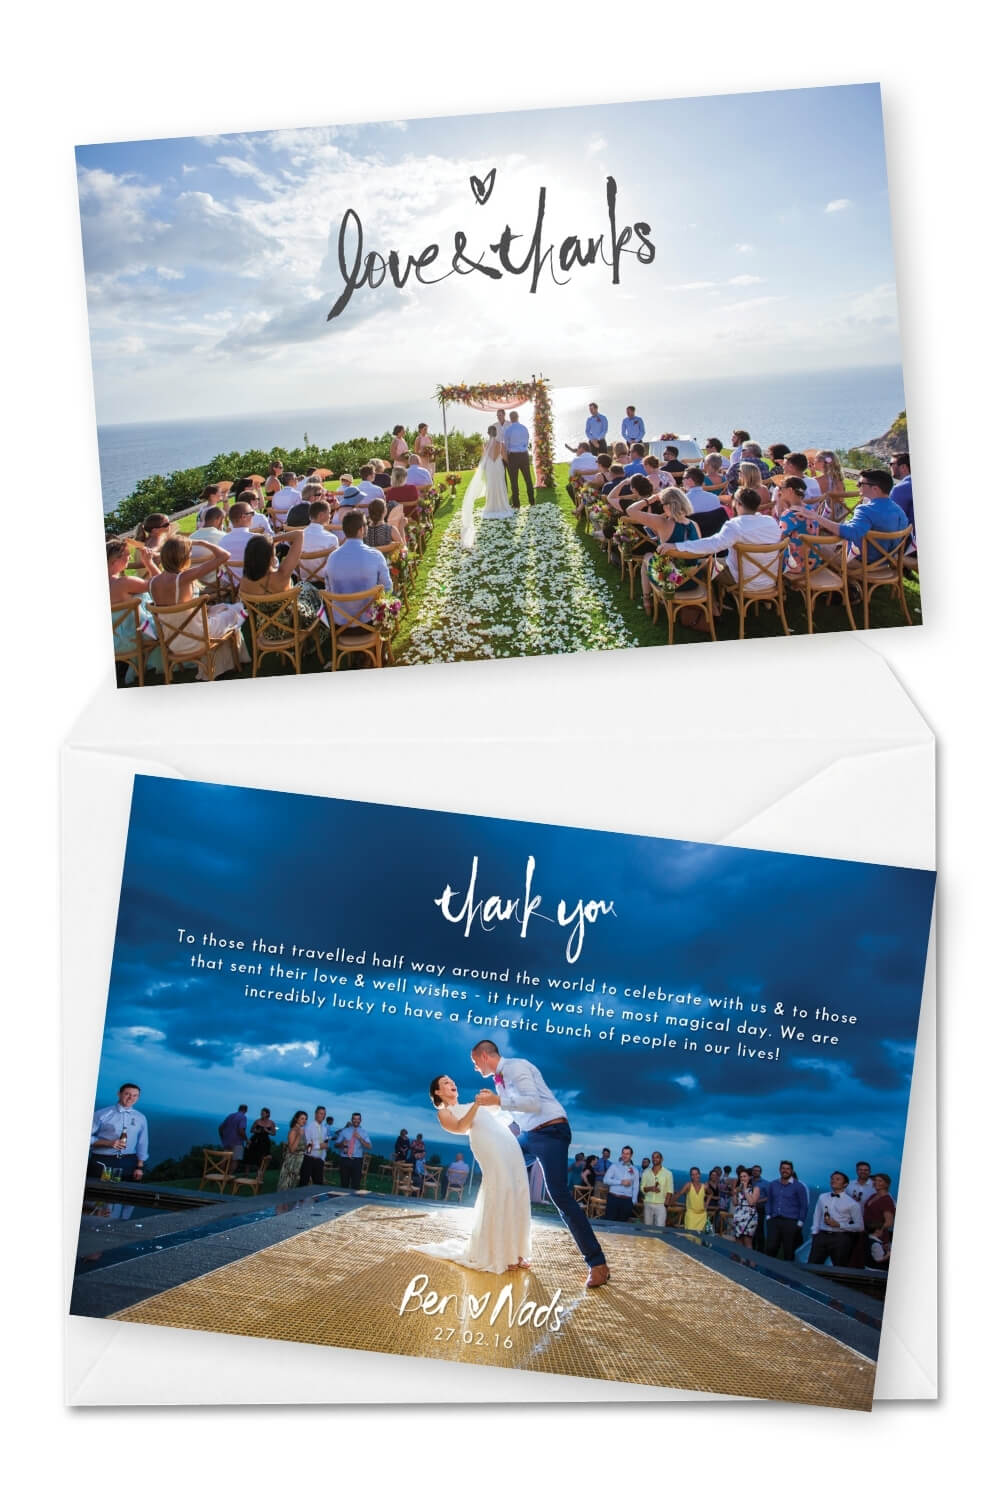 How to Sign Off Wedding Thank You Cards D-Image Plus Photography For the Love of Stationery